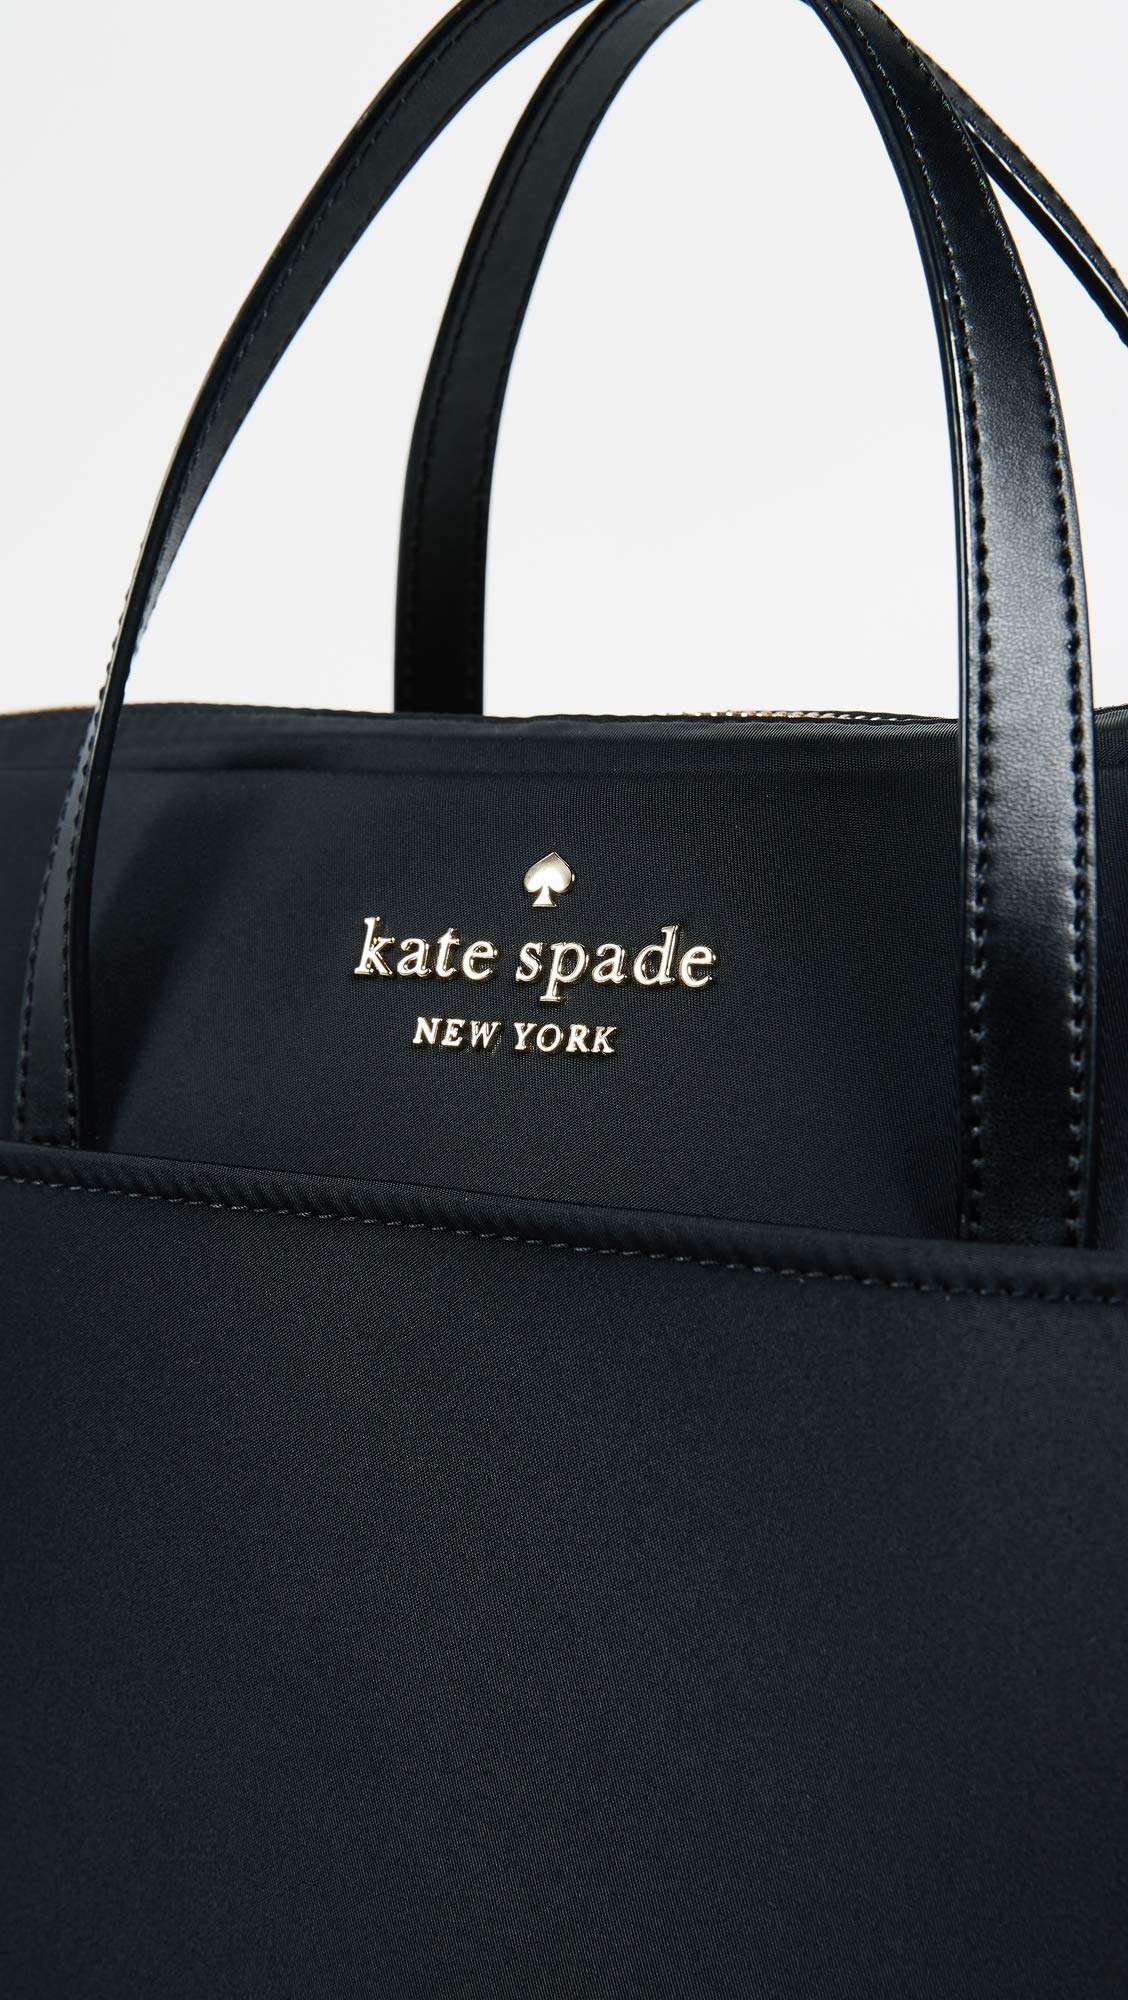 Kate Spade New York Universal Laptop Commuter Case, Black, One Size by Kate Spade New York (Image #3)